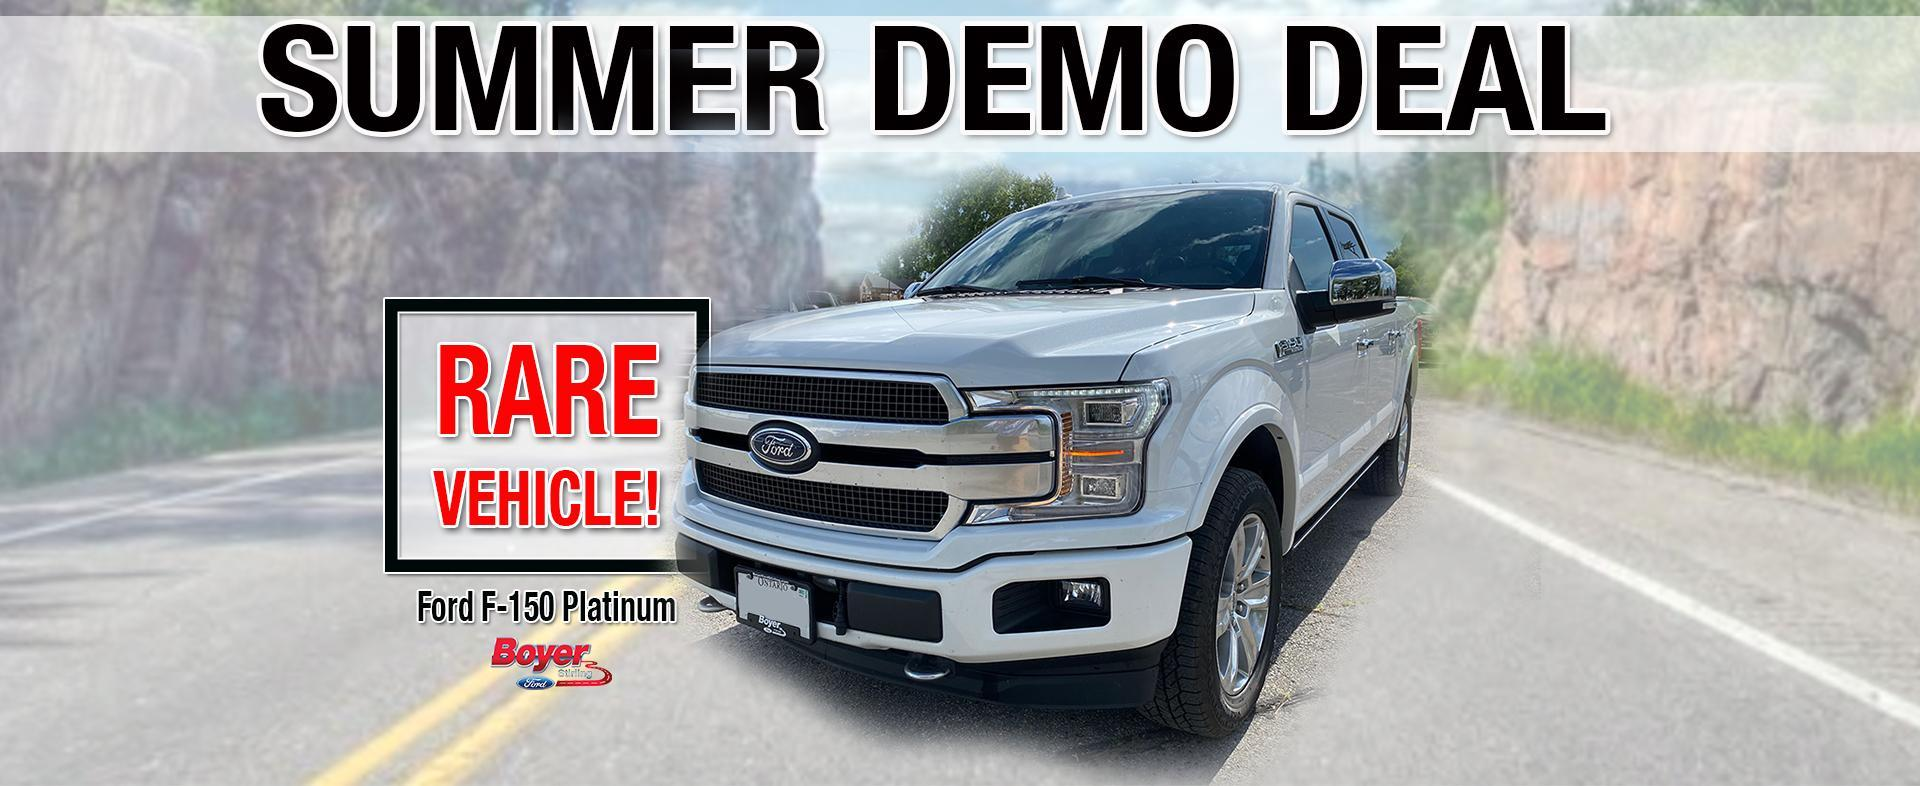 Summer Demo Deal at Boyer Ford Stirling - White Ford F150